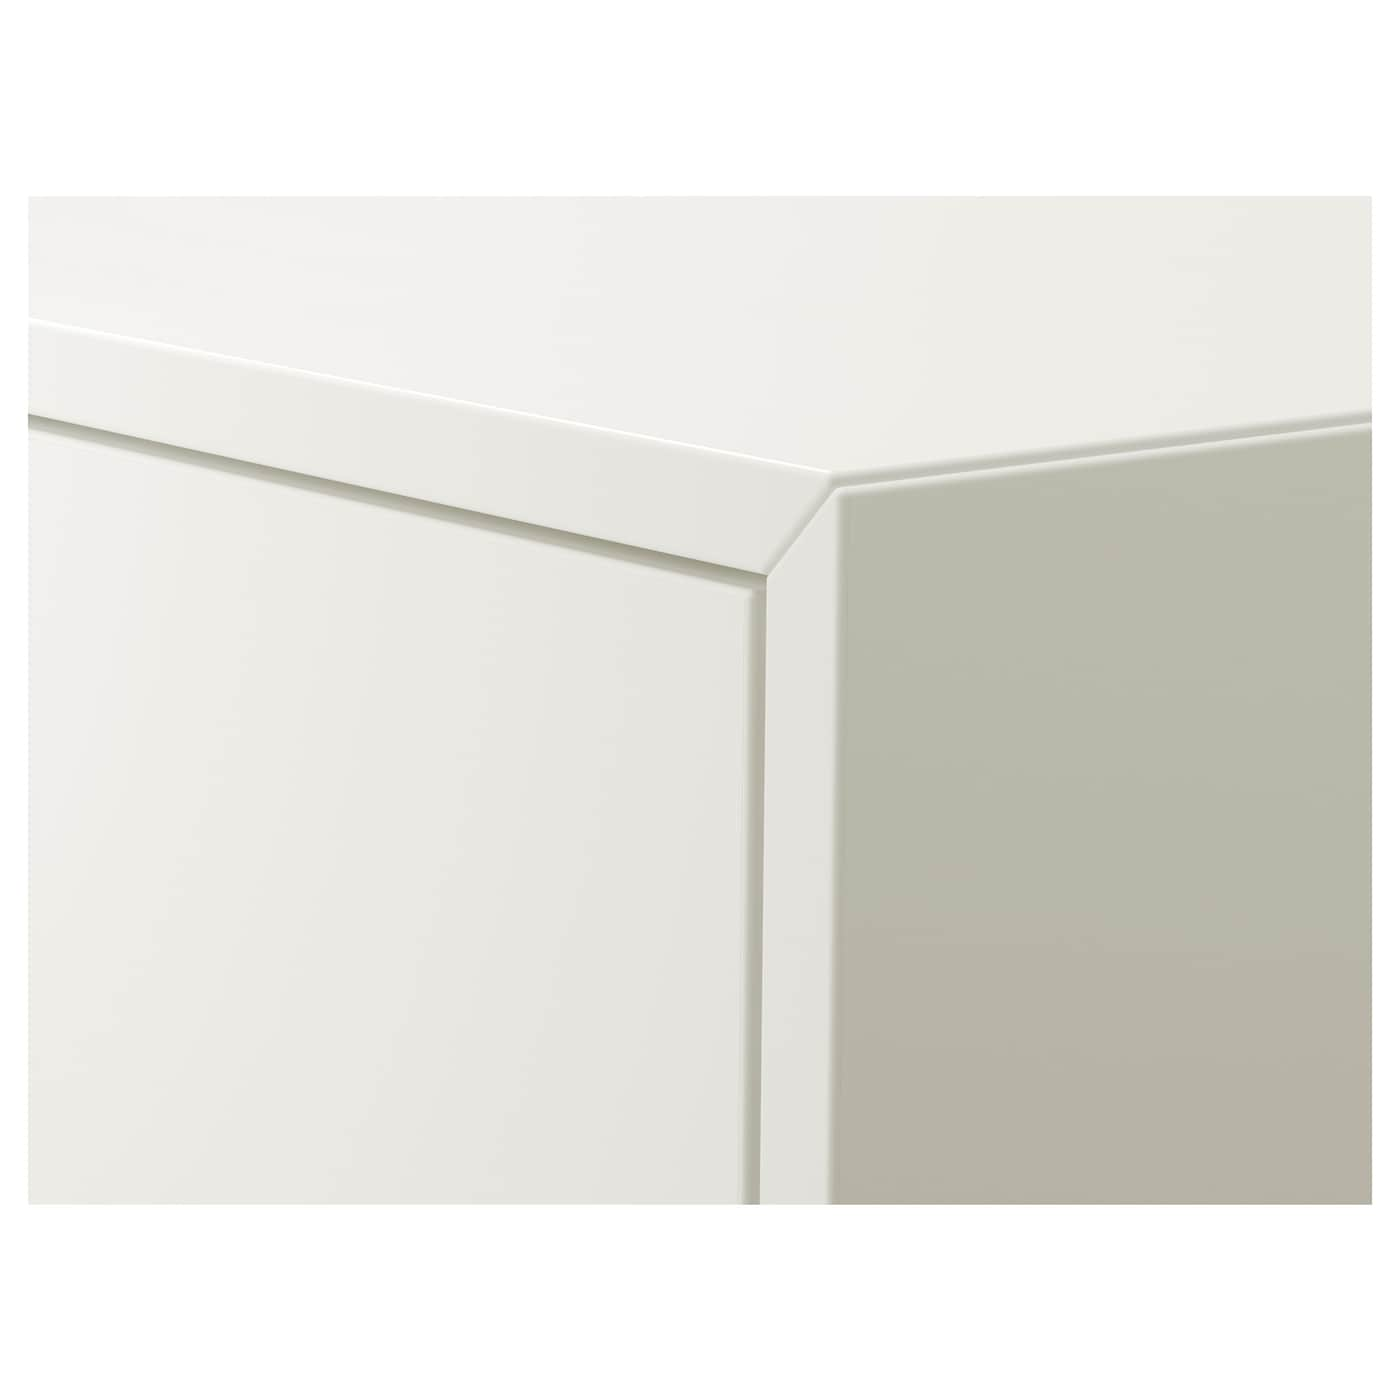 """EKET cabinet with 2 drawers white 13 3/4 """" 13 3/4 """" 13 3/4 """" 10 1/4 """" 10 5/8 """" 3 lb"""